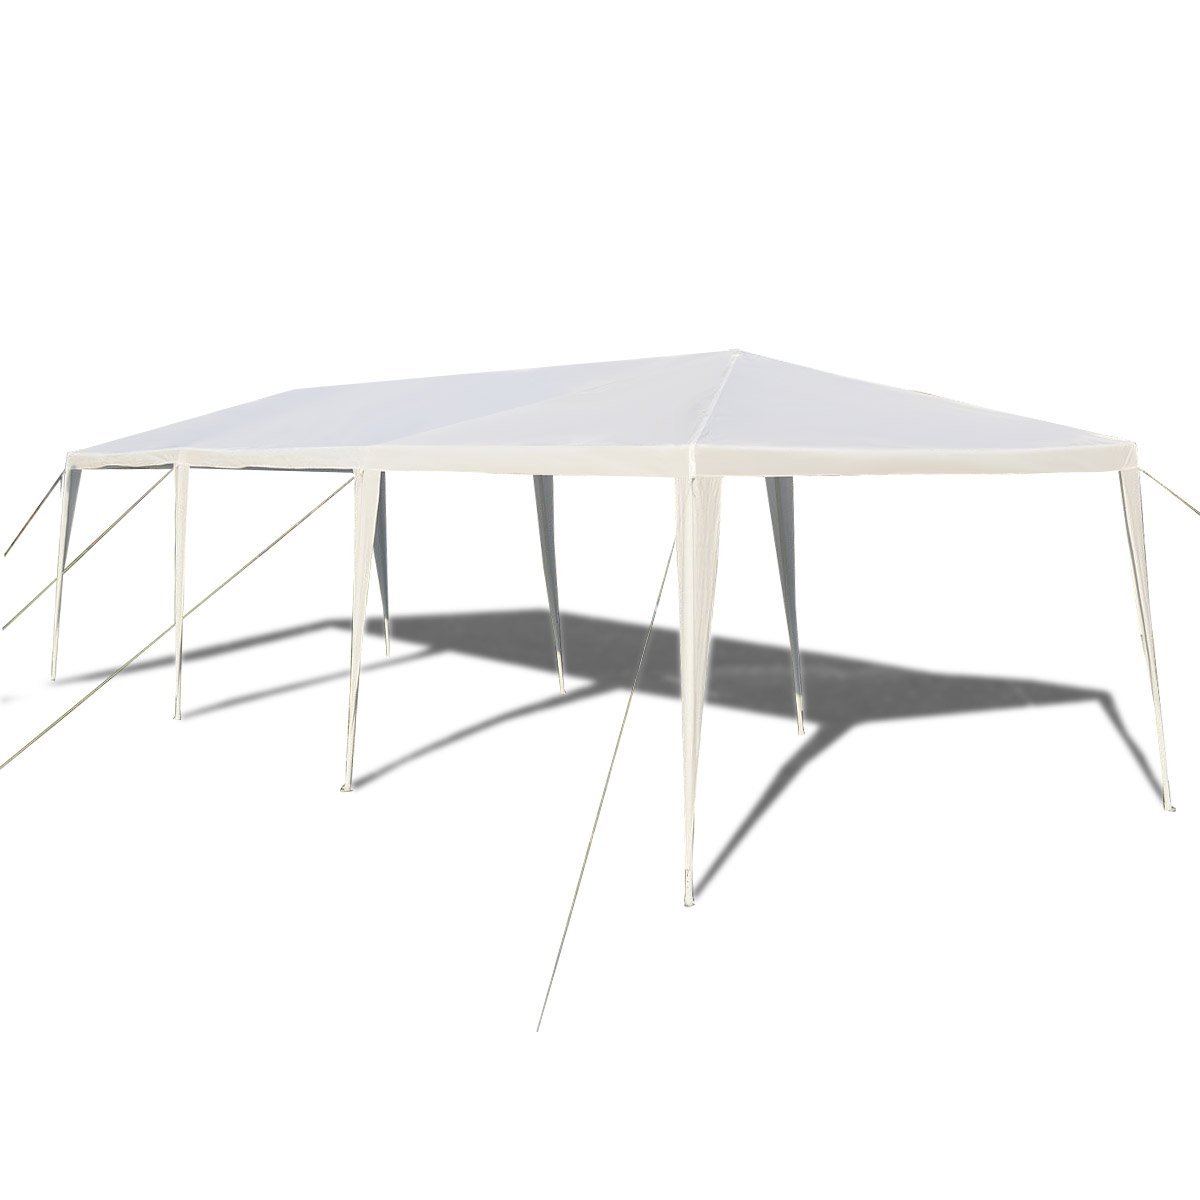 Gymax White Wedding Tent 10'x30'Outdoor Party Canopy Events - image 6 of 10